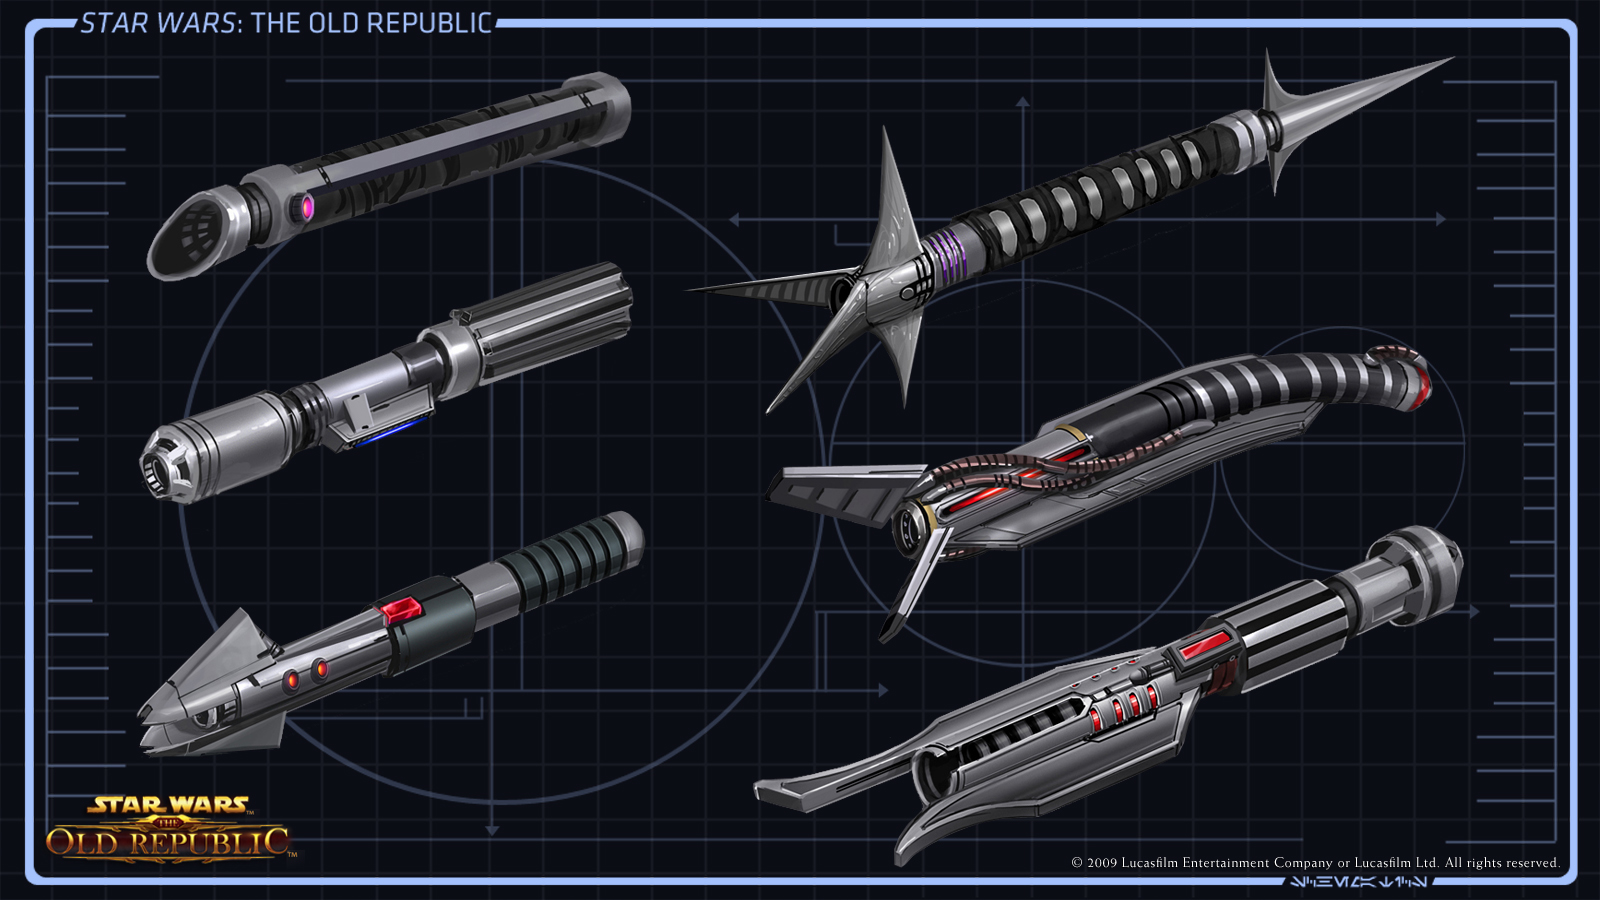 SWTOR Face Star Wars the Old Republic related news: SWTOR Class ...